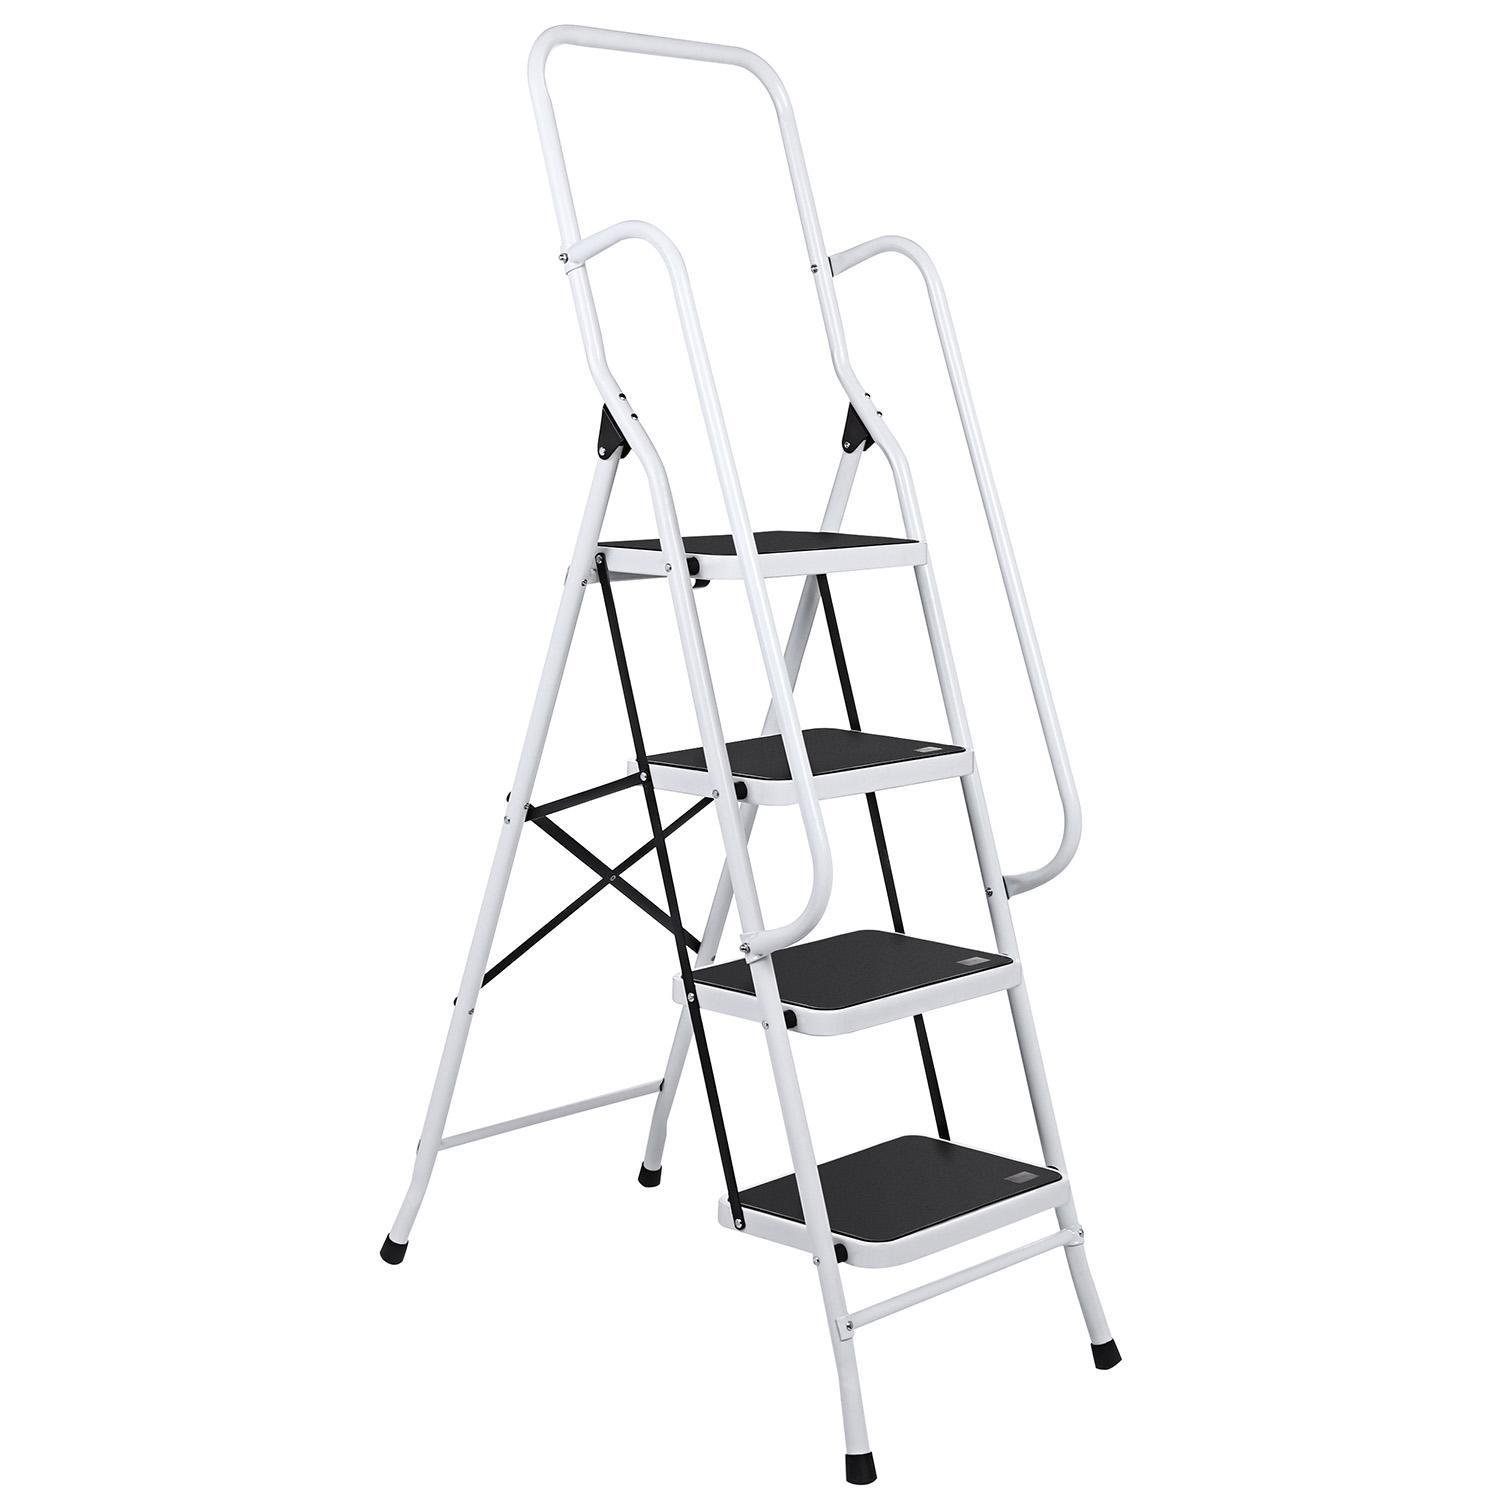 Opuko Folding 4-Step Ladder Aluminum Alloy Lightweight with Handrails